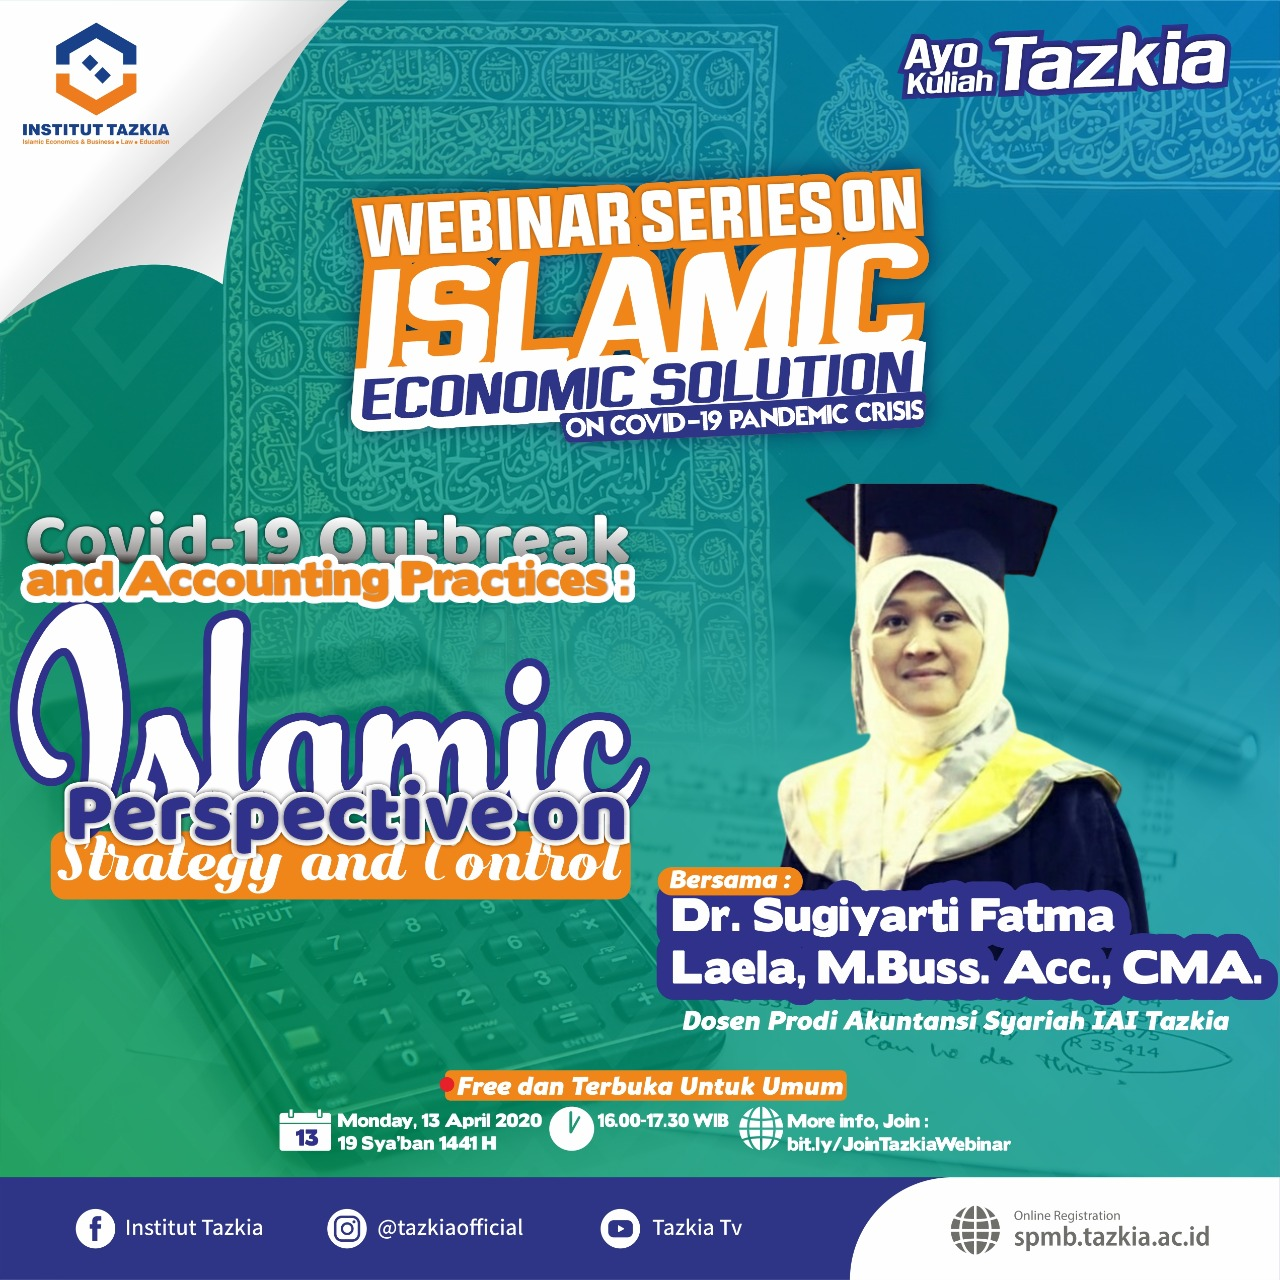 Webinar Tazkia Spesial Live On Youtube, Instagram, Facebook & Google Meet…Sore Ini Pukul 16.00 WIB